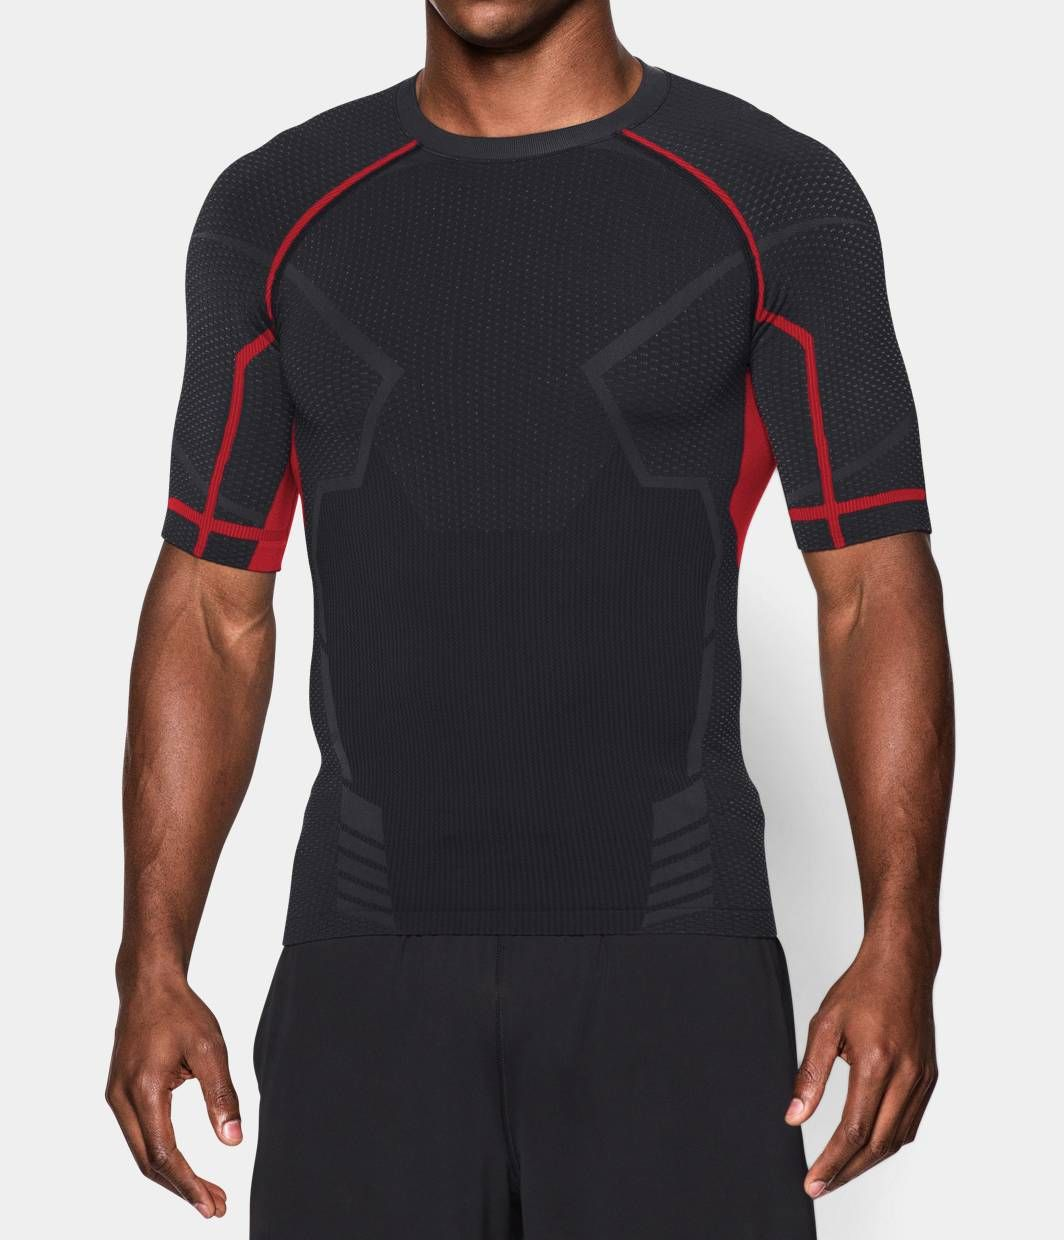 Men's Iron Man UA Seamless Compression Shirt | Under Armour US